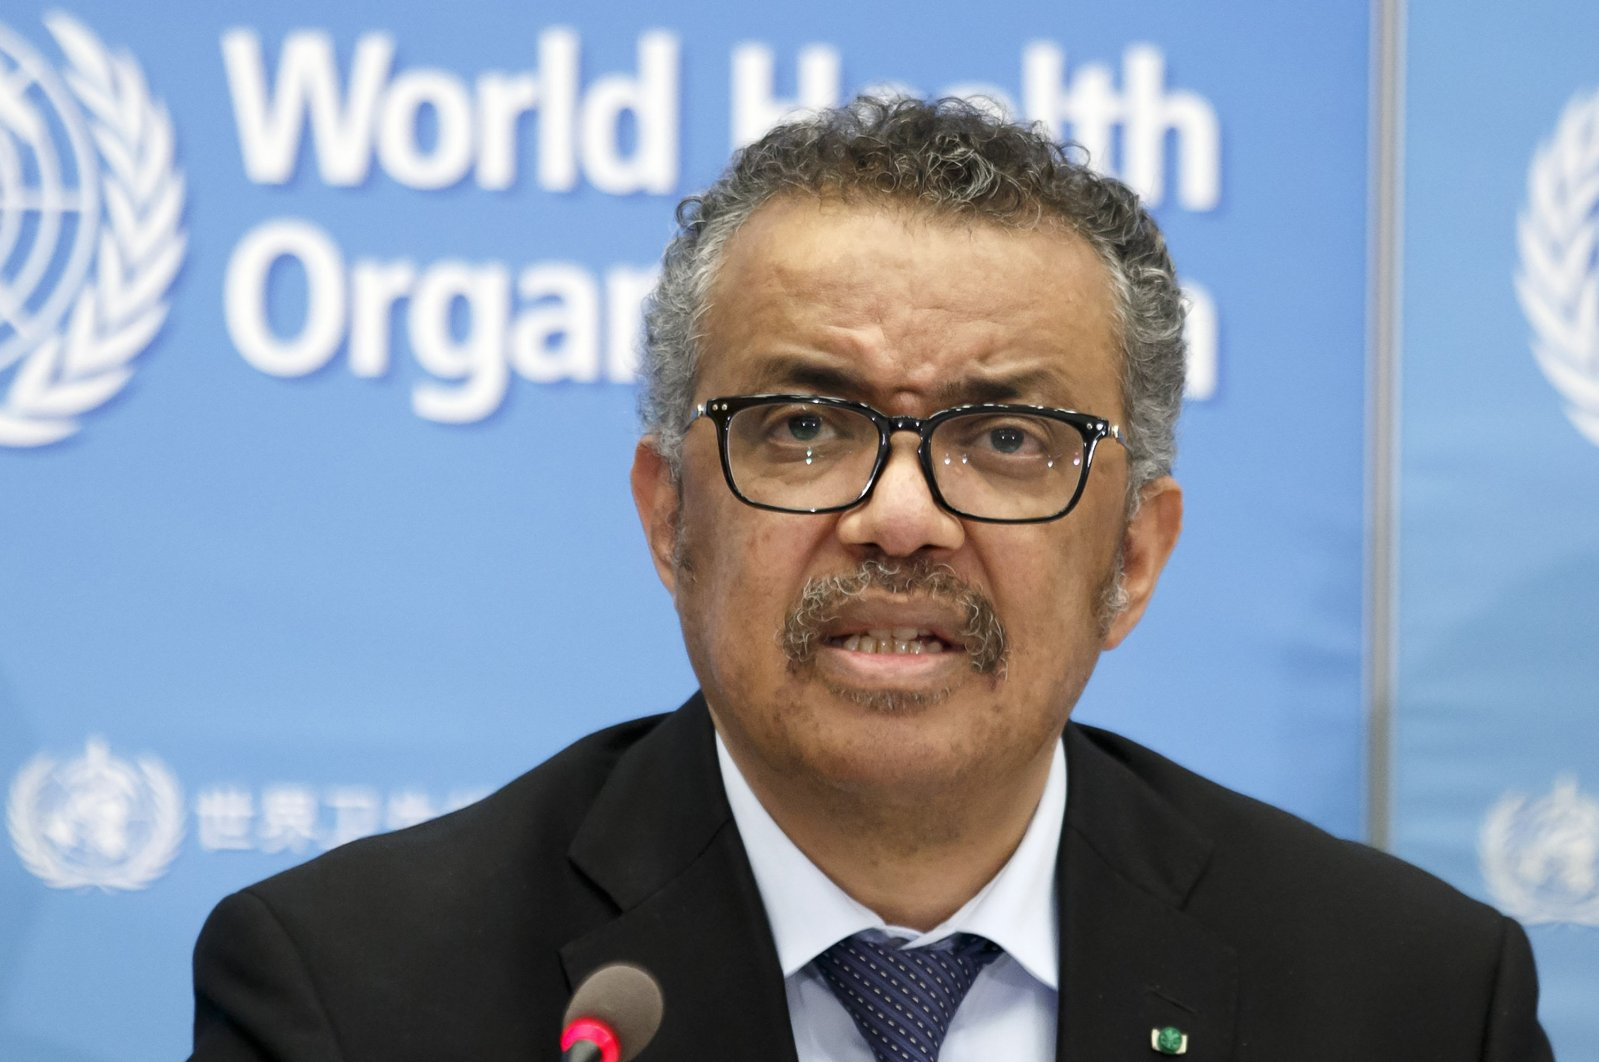 Tedros Adhanom Ghebreyesus, Director-General of the World Health Organization, addresses a press conference about the update on COVID-19 at the WHO headquarters in Geneva, Switzerland, Feb. 24, 2020. (AP Photo)